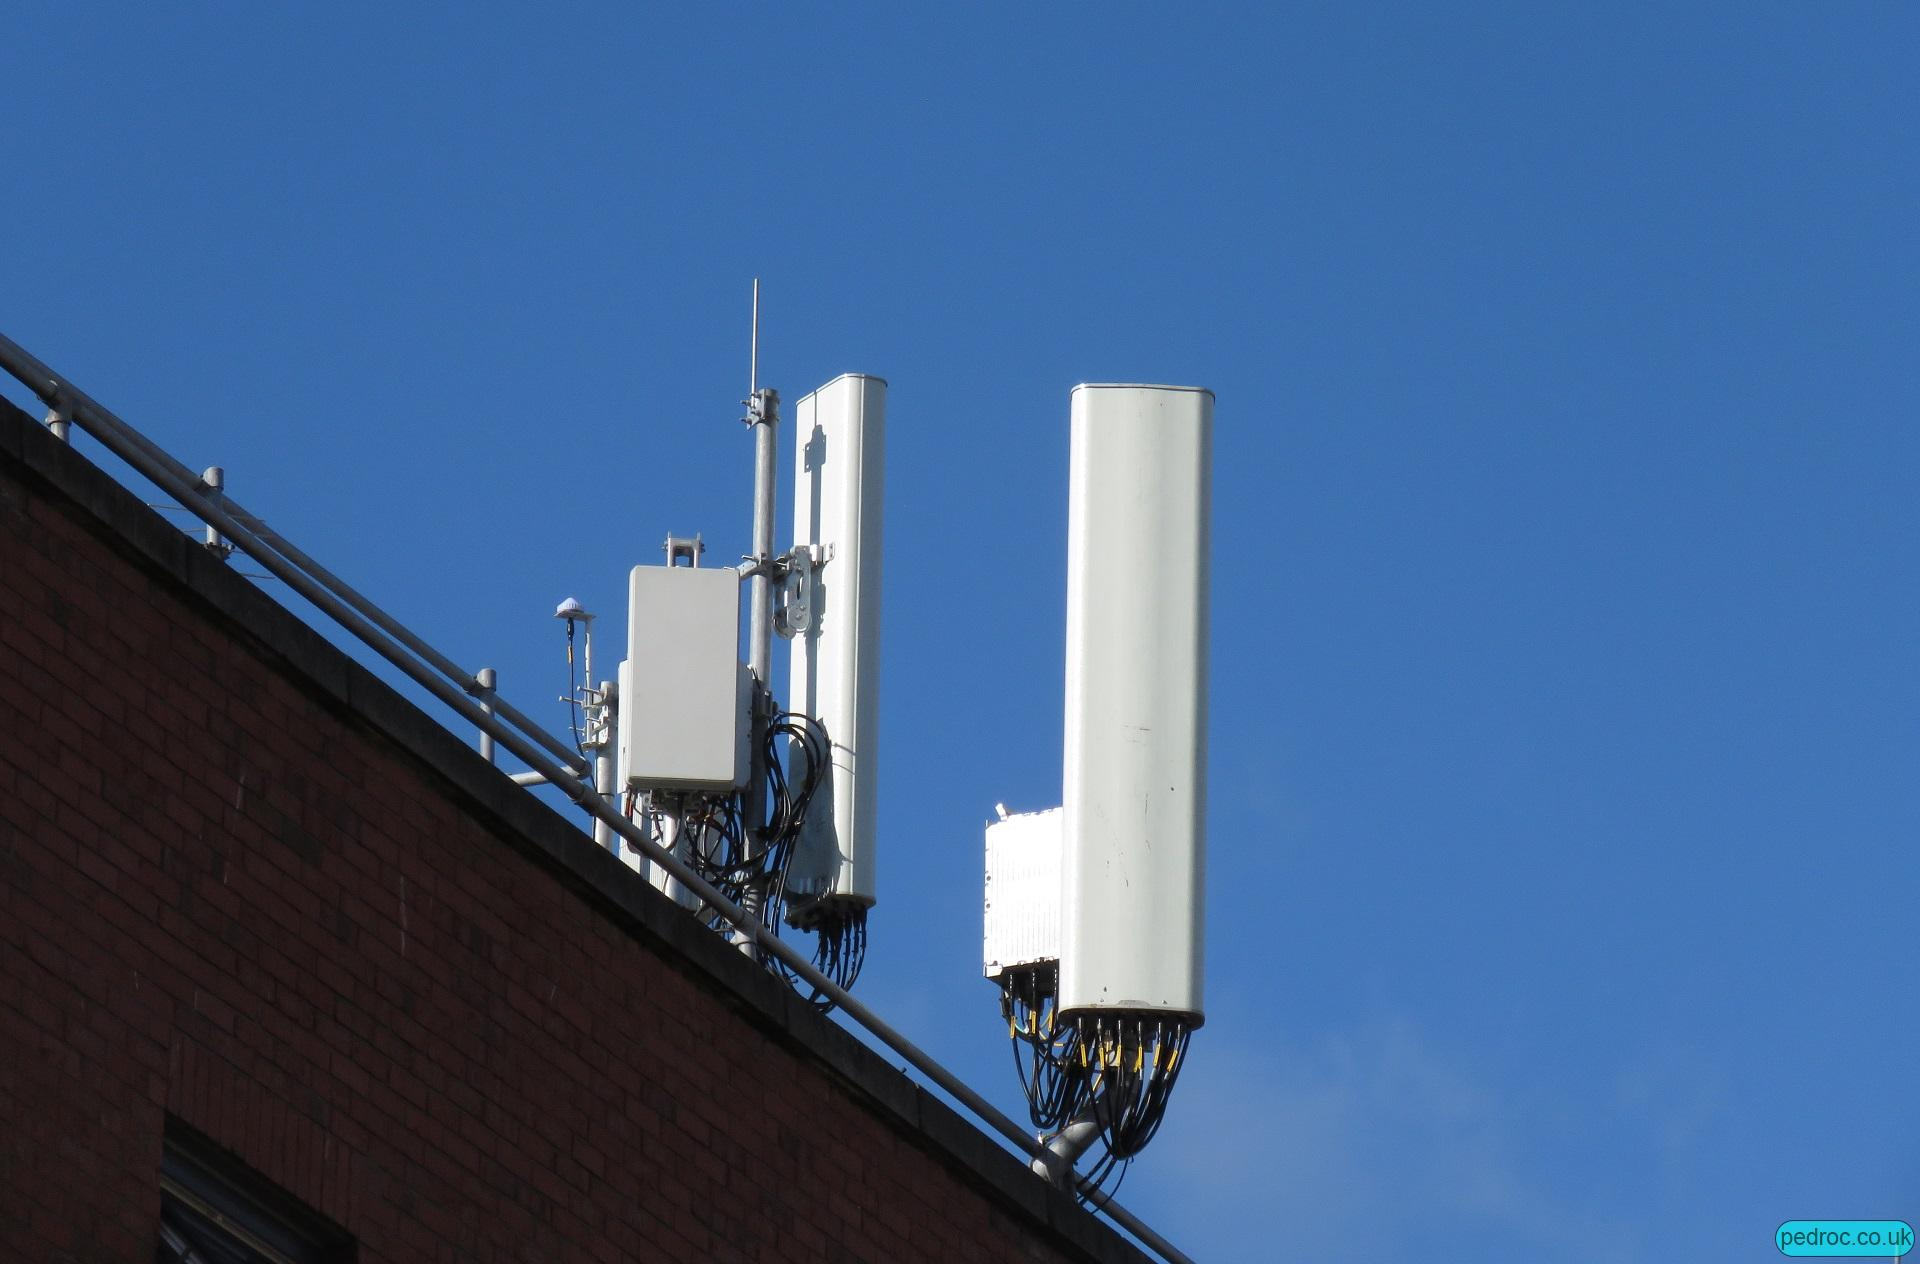 Eir rooftop 5G mast with Huawei six band antenna, Huawei RRUs and Huawei AAU